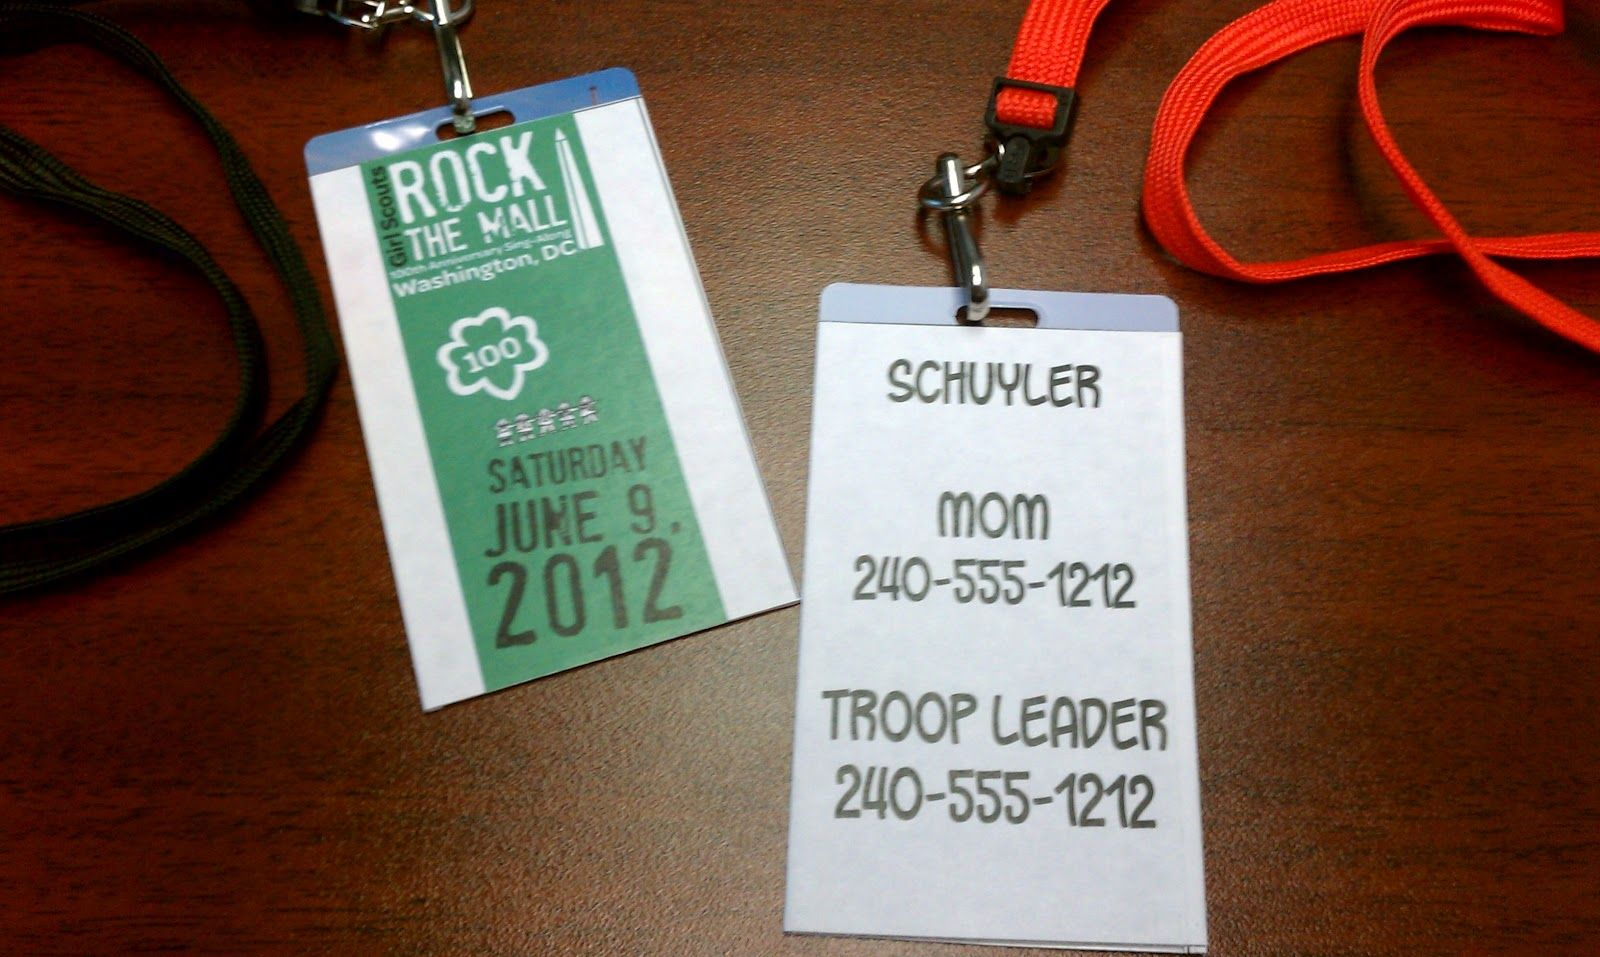 good idea for troop travel - must remember for savannah trip